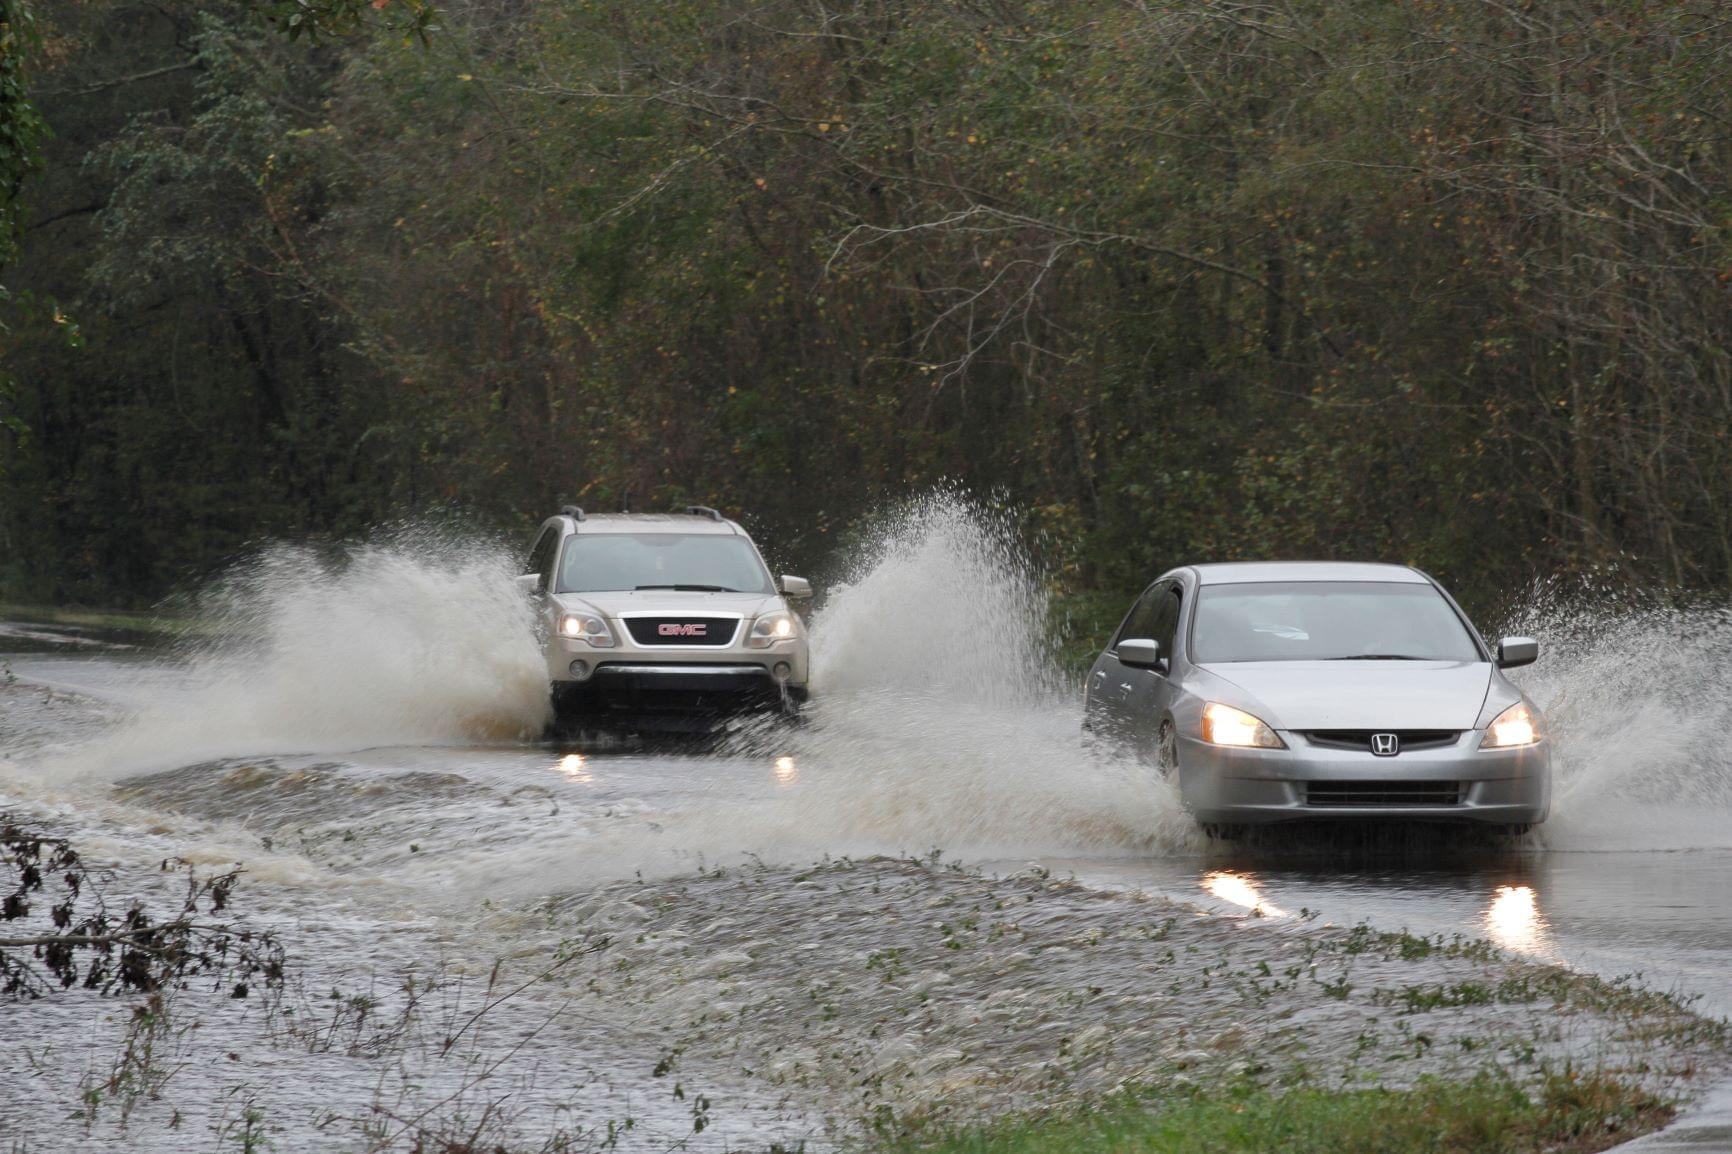 Drivers Tempt Fate On Water-Covered Roads (PHOTOS)